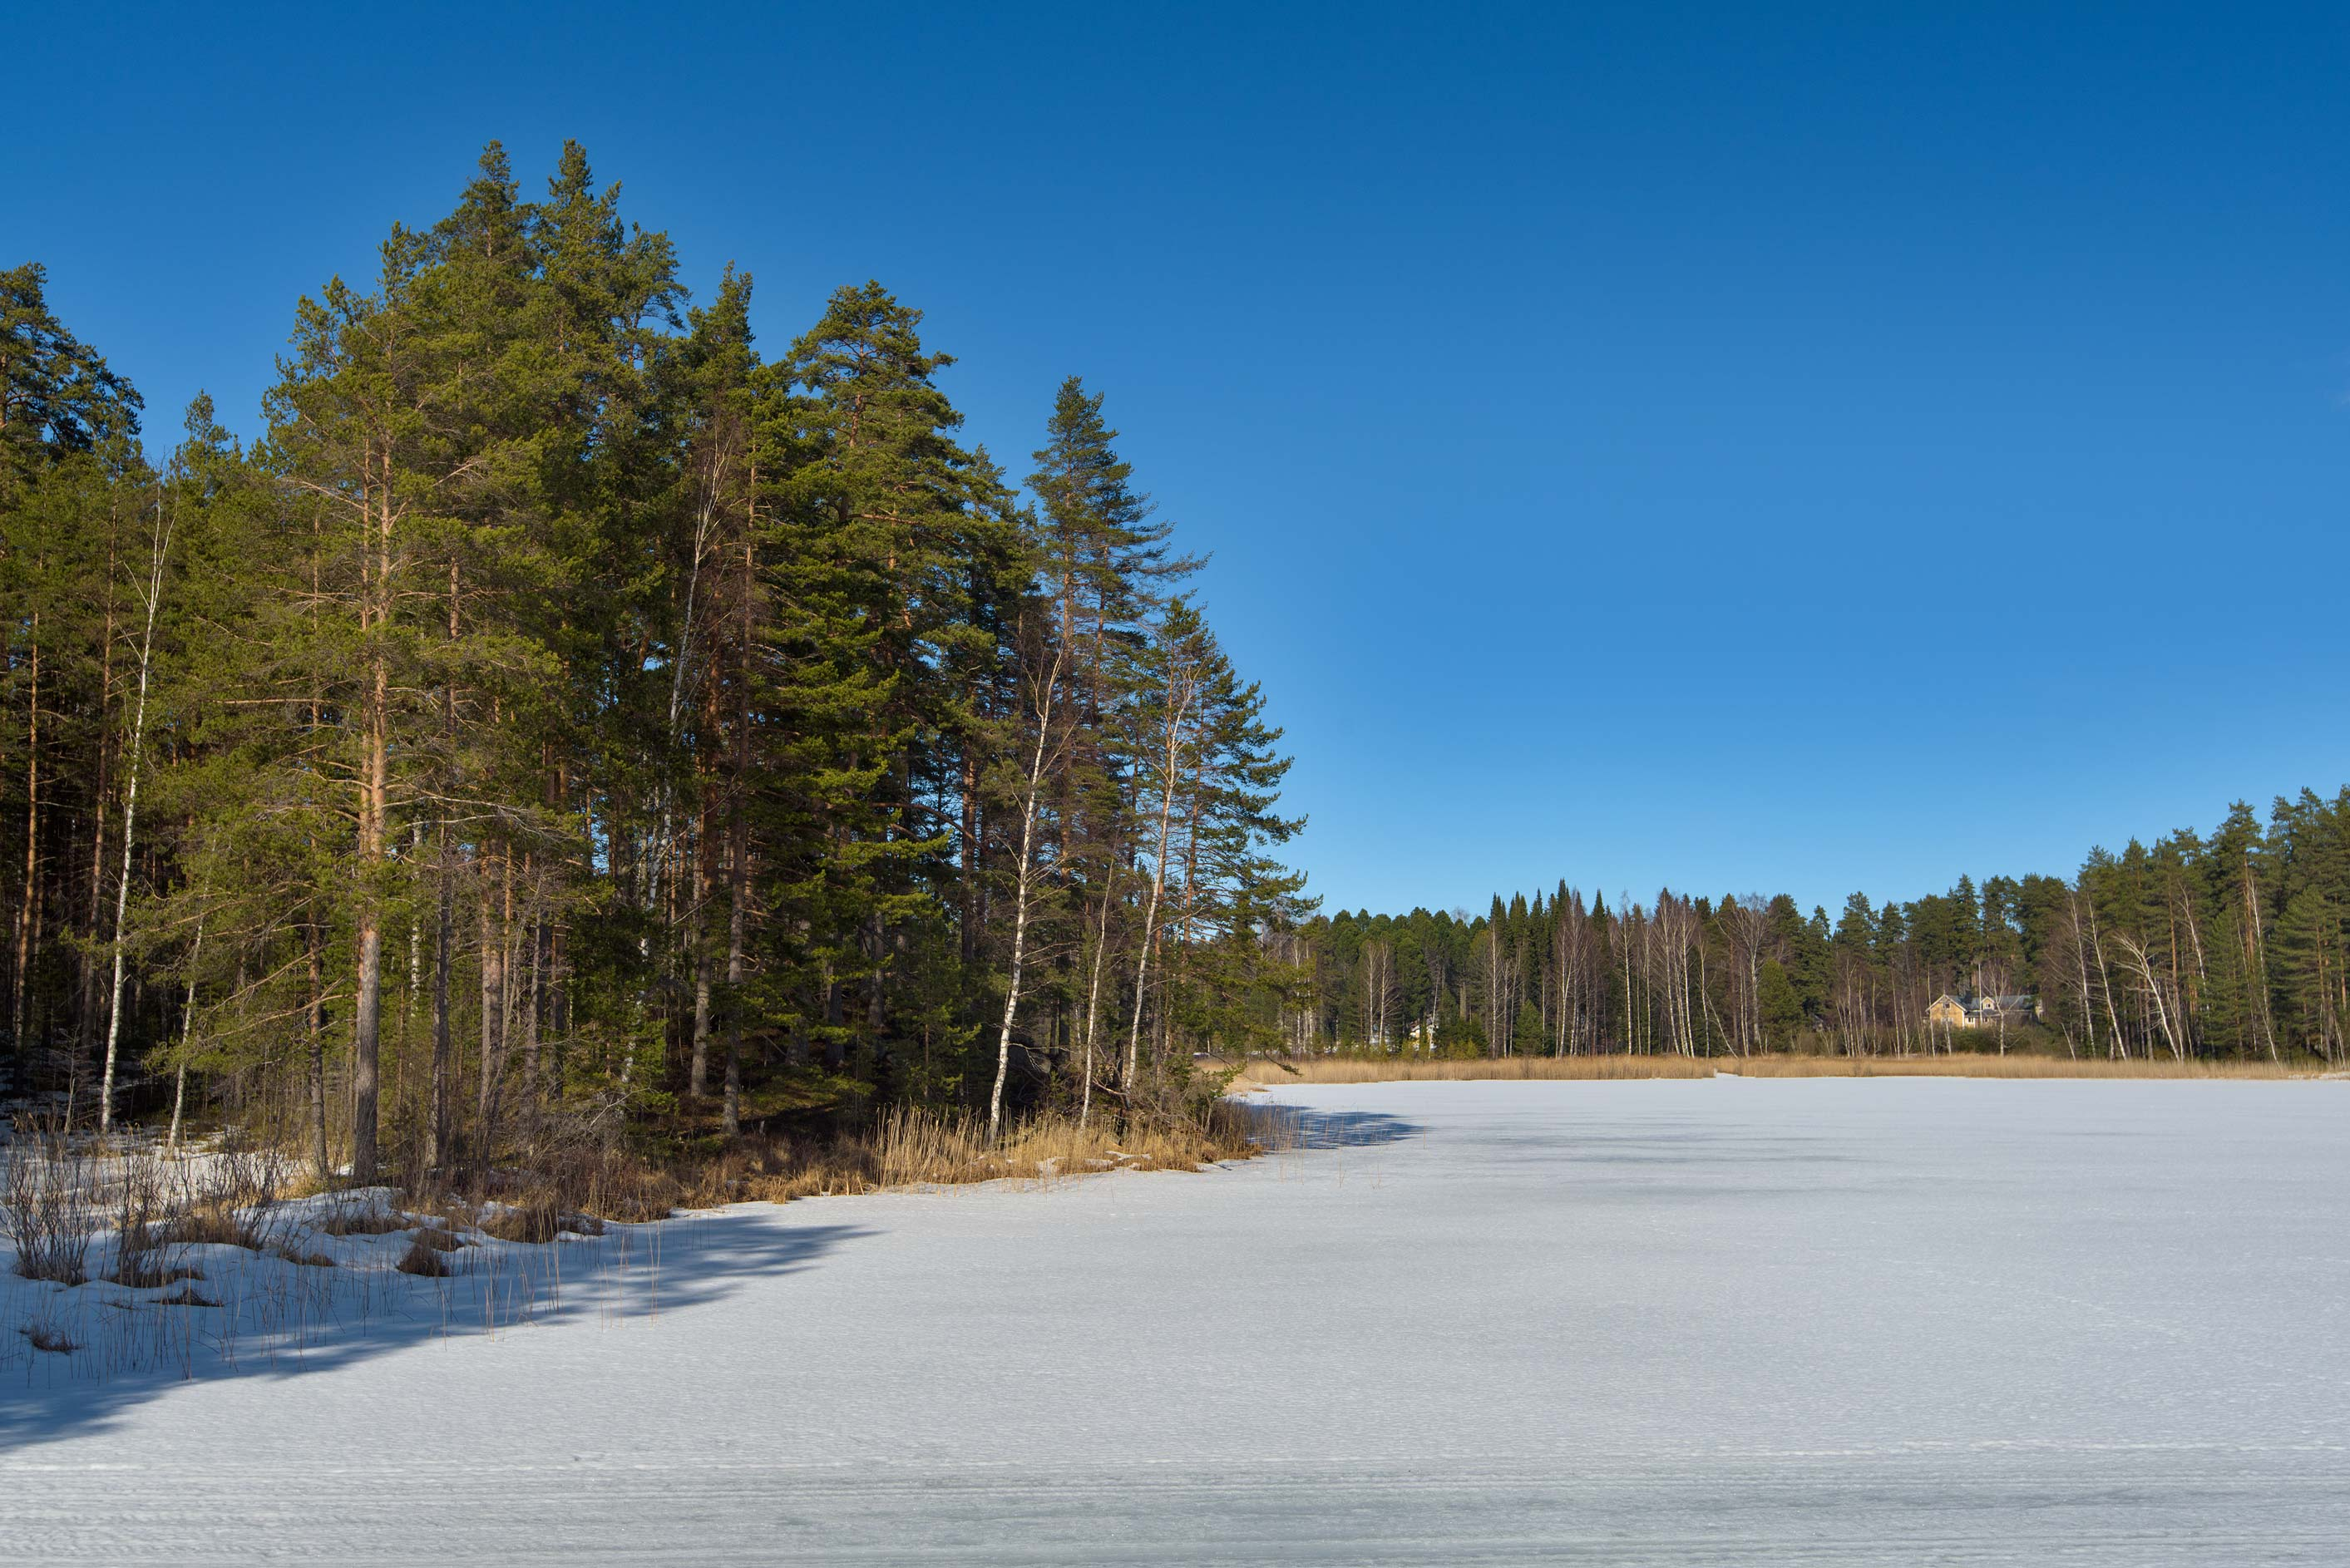 Forest and a lake from Kissing Bridge on Punkaharju Island. Lusto, Finland